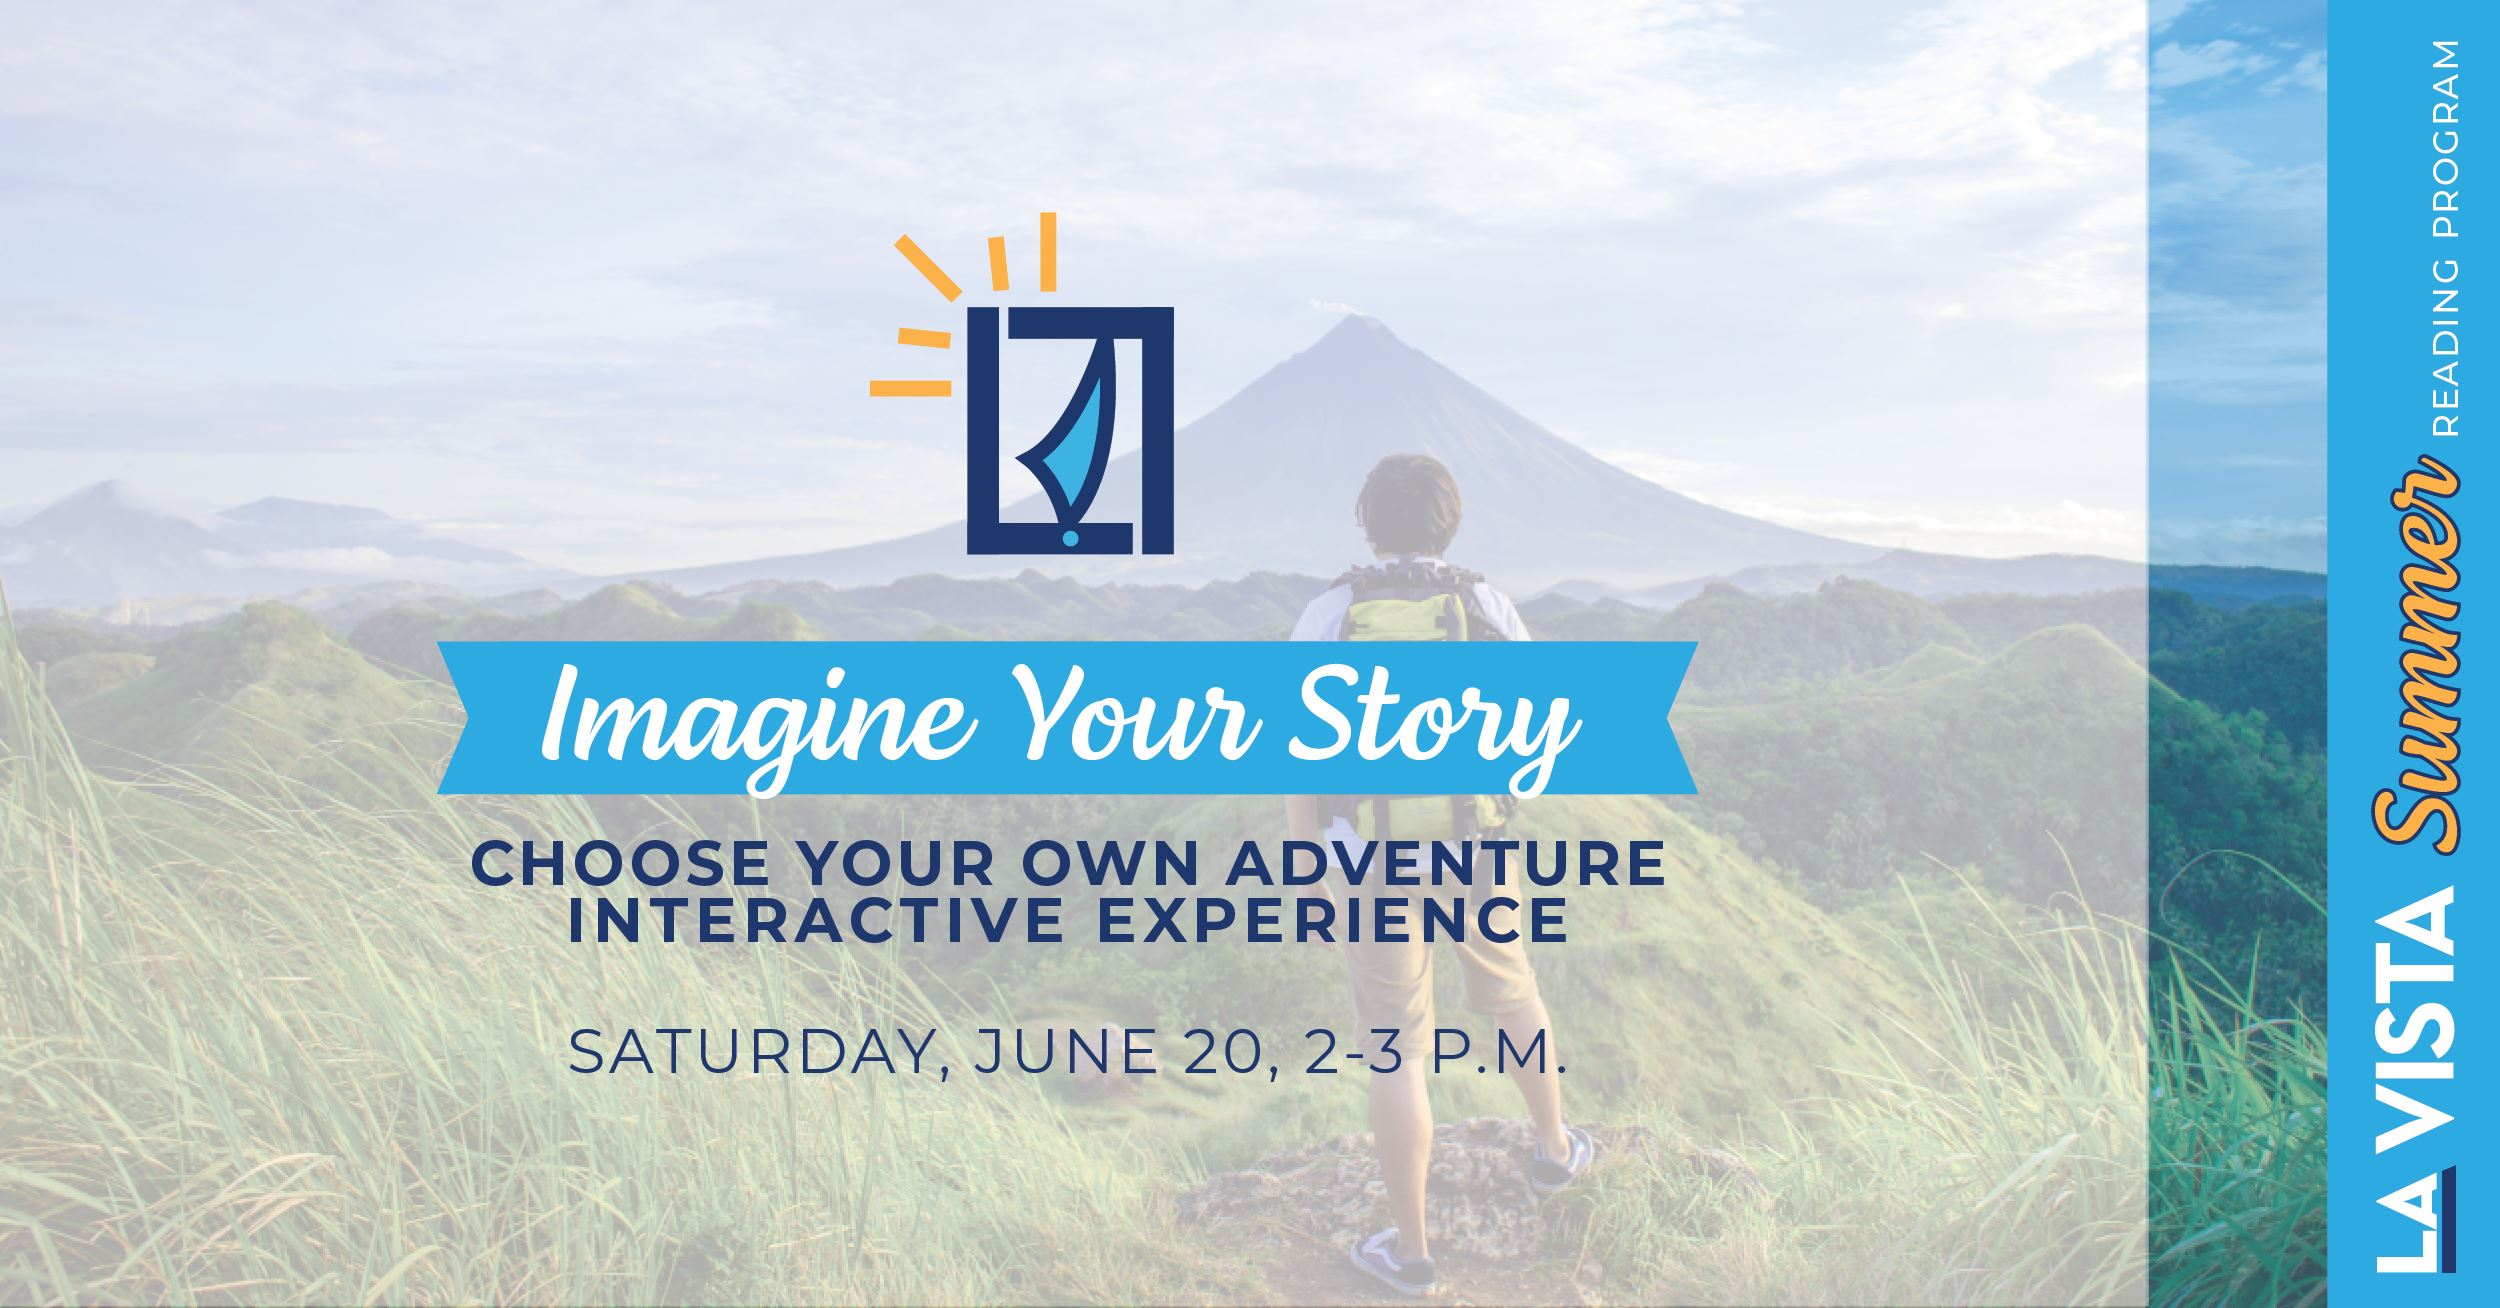 FACEBOOK Choose your own adventure June 20